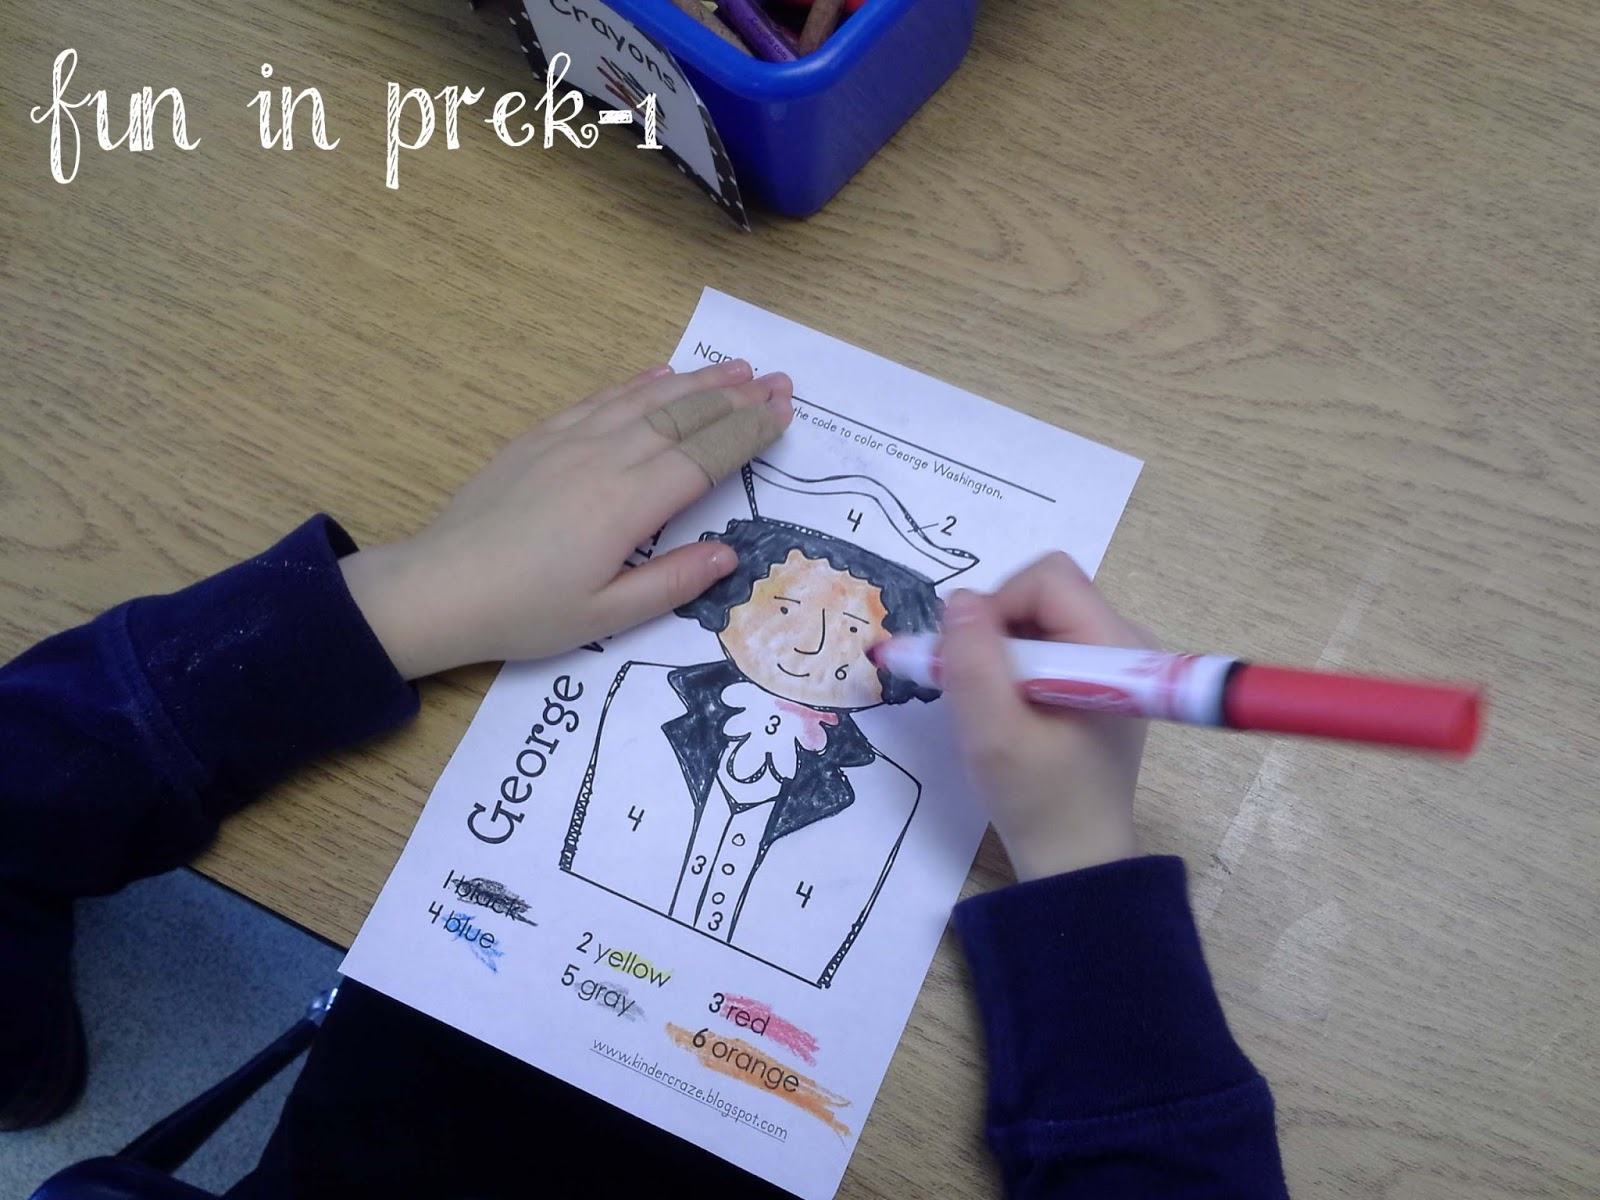 Many Thanks To Maria At Kinder Craze For This Great Freebie On Tuesday We Learned A Little Bit About What President Does And Why Celebrate Presidents